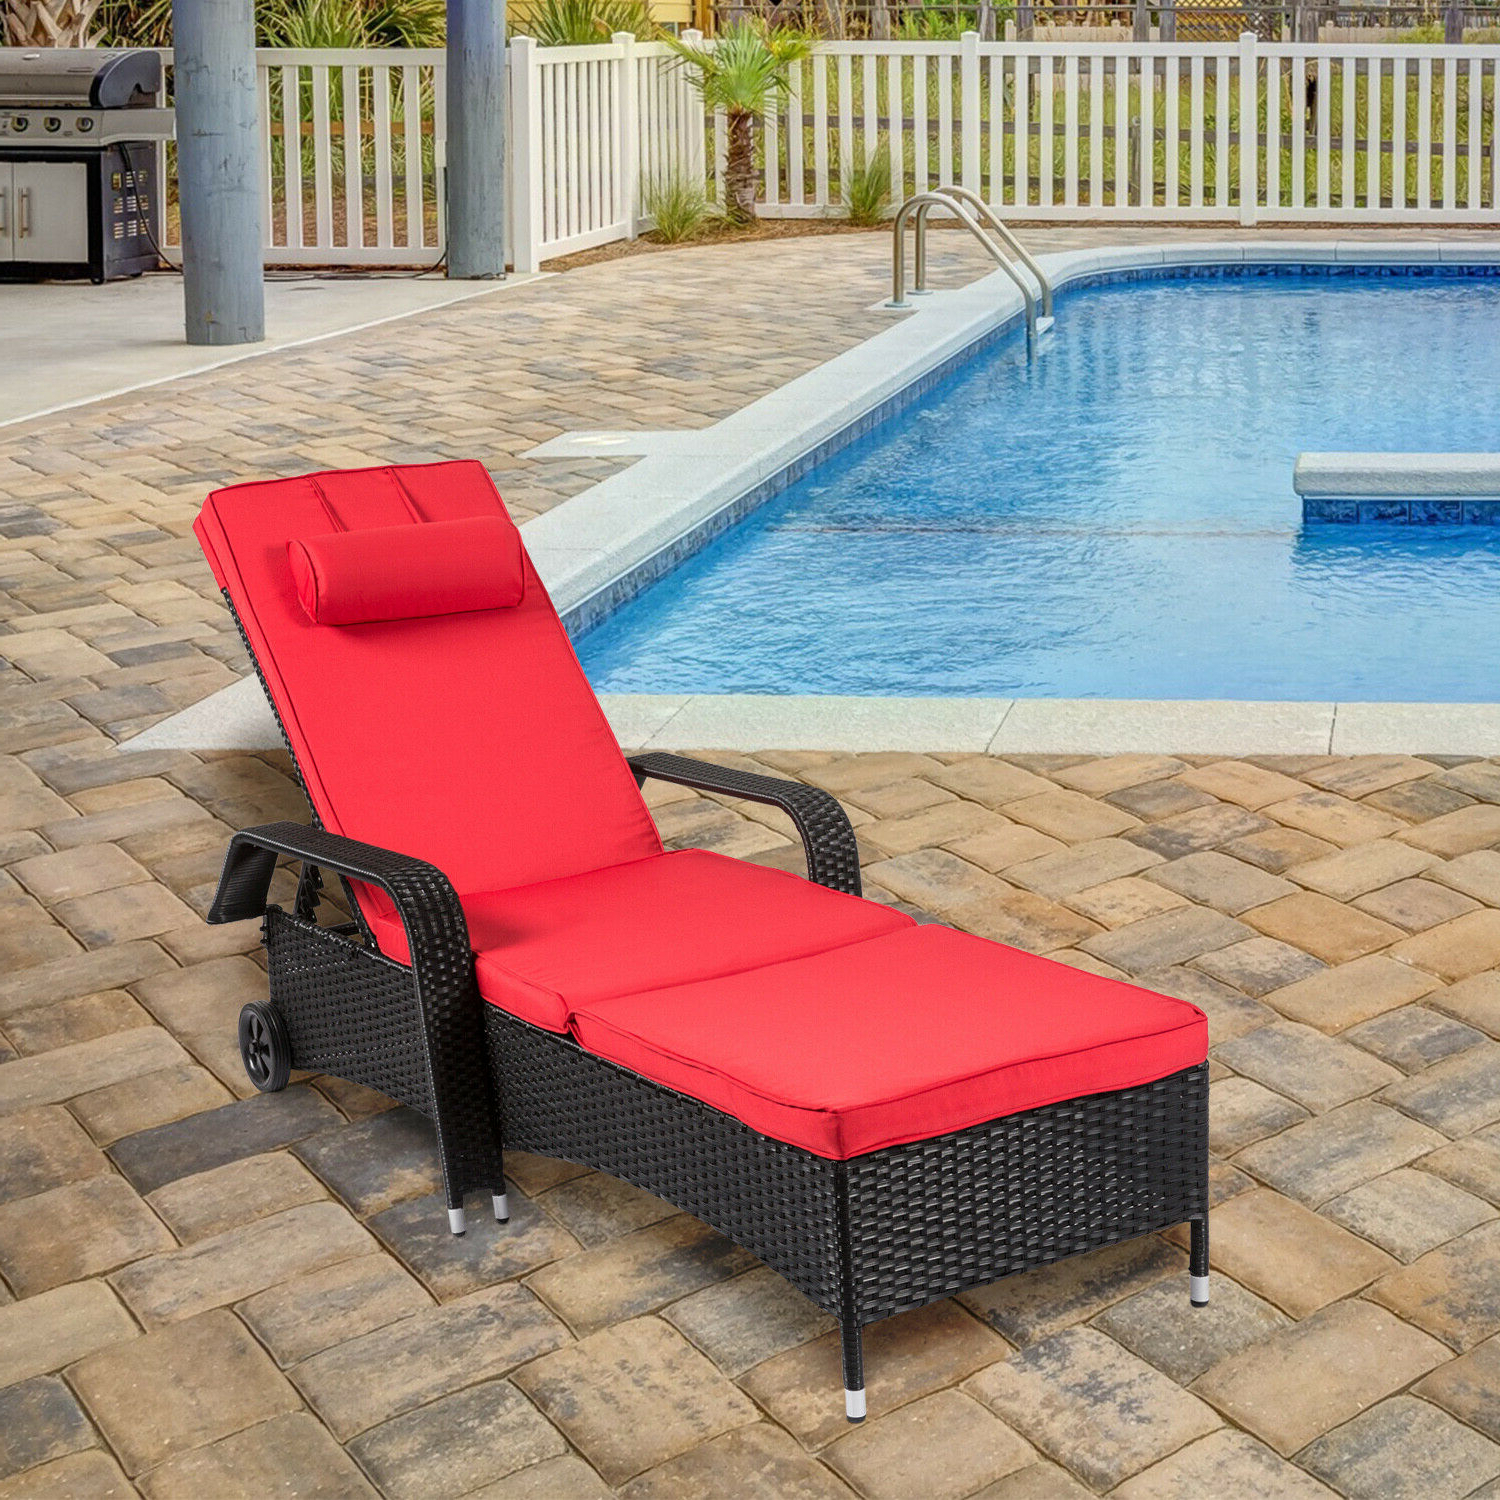 Well Liked Patio Rattan Wicker Chaise Lounge Recliner Adjustable Couch Chair Cushion Wheels Intended For Outdoor Adjustable Rattan Wicker Recliner Chairs With Cushion (View 22 of 25)